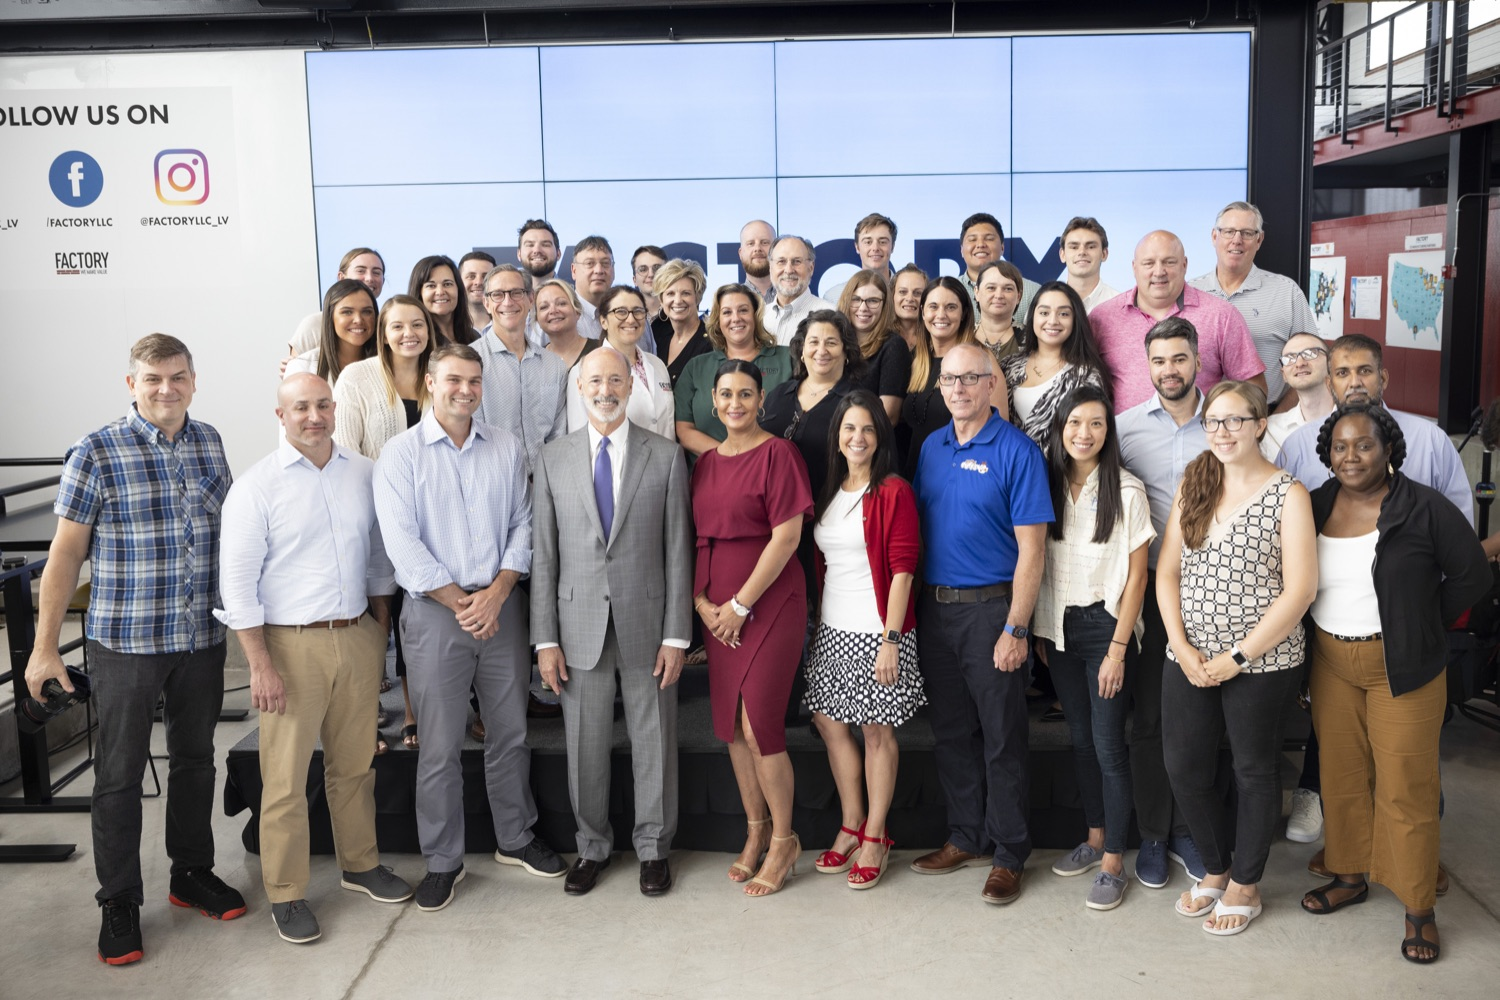 """<a href=""""https://filesource.wostreaming.net/commonwealthofpa/photo/18941_gov_economicDevelopment_dz_020.jpg"""" target=""""_blank"""">⇣Download Photo<br></a>Governor Tom Wolf today visited Factory LLC in Bethlehem to tour the facility and highlight the importance of investing in Pennsylvanias start-up companies. During the visit, he met with companies affiliated with Factory, including Stuffed Puffs®, which received a $1 million funding proposal from the commonwealth in 2019 to expand its manufacturing operations and create jobs, Mikeys®, Pipcorn®, Honey Stinger®, and ROAR® Organic. Bethlehem, PA  July 19, 2021"""